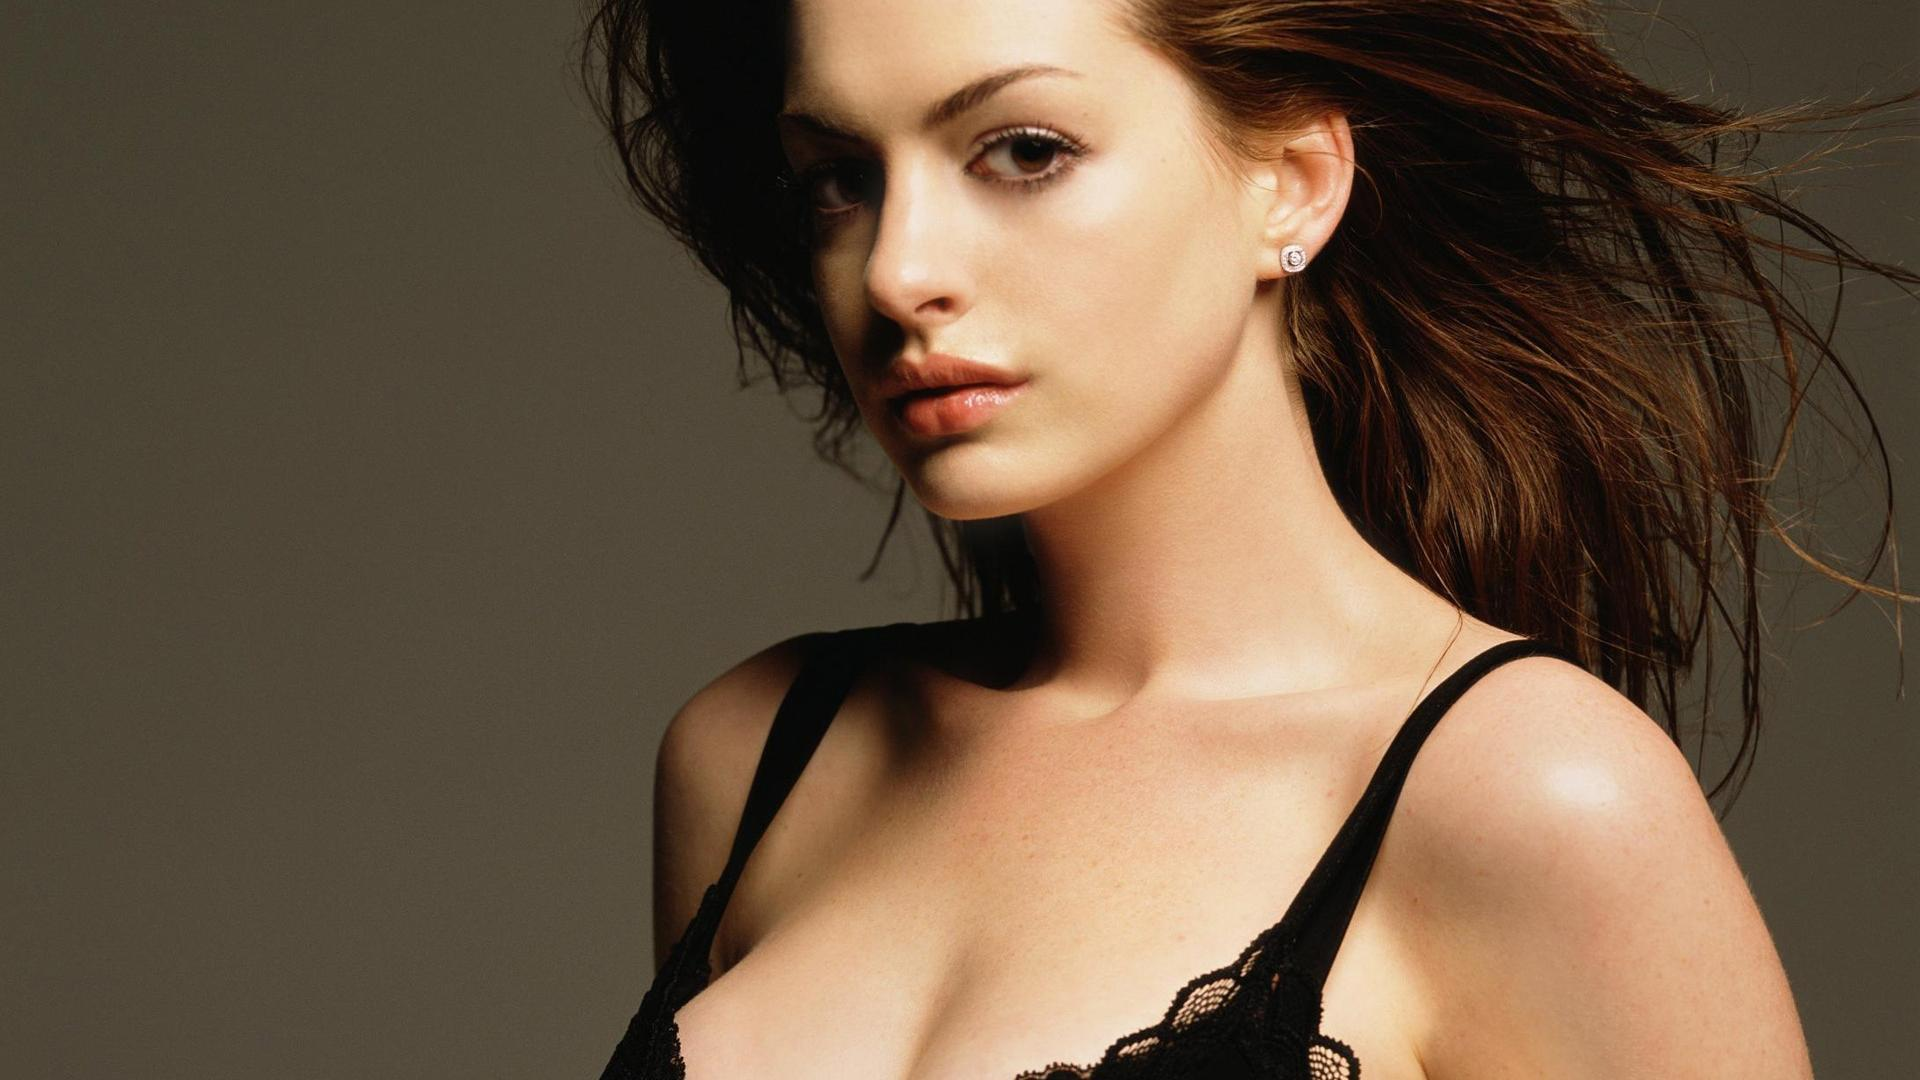 Im im images of anne hathaway - Anne Hathaway Sexy Photoshoot